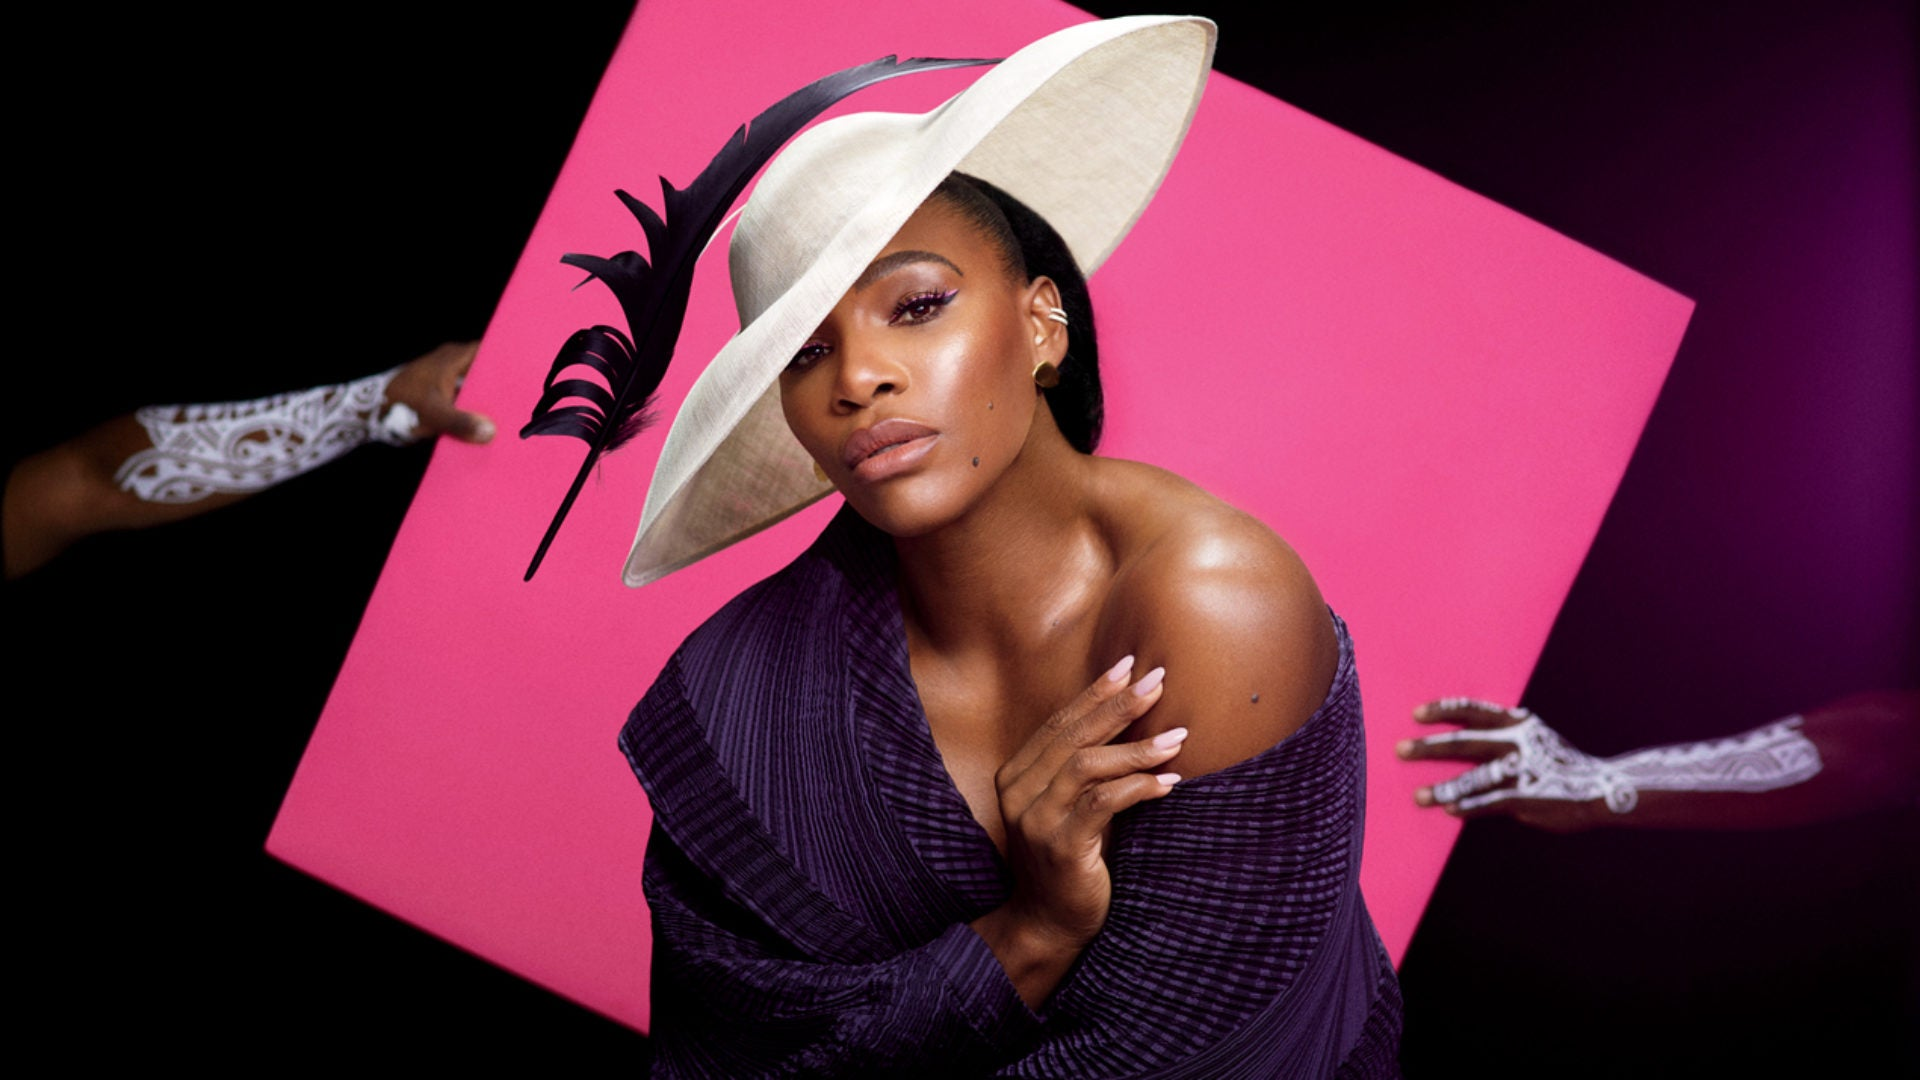 The Future of Serena Williams: The Tennis Superstar And Designer Is Ready To Conquer More